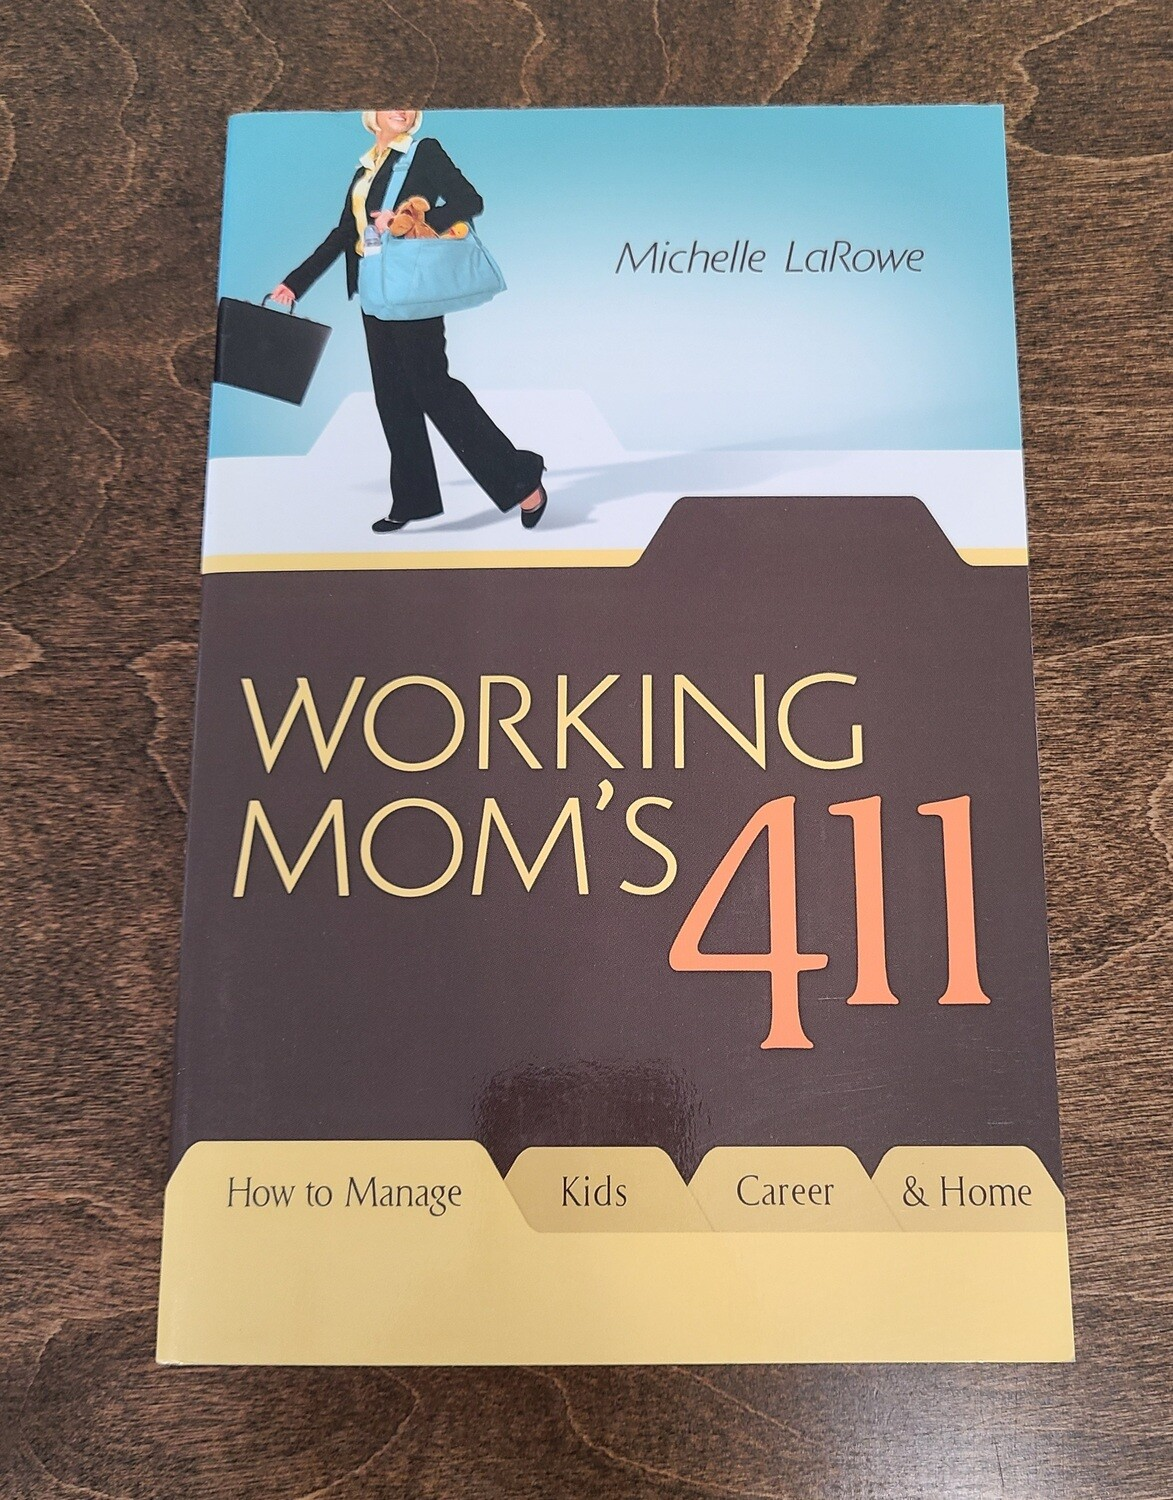 Working Mom's 411 by Michelle LaRowe